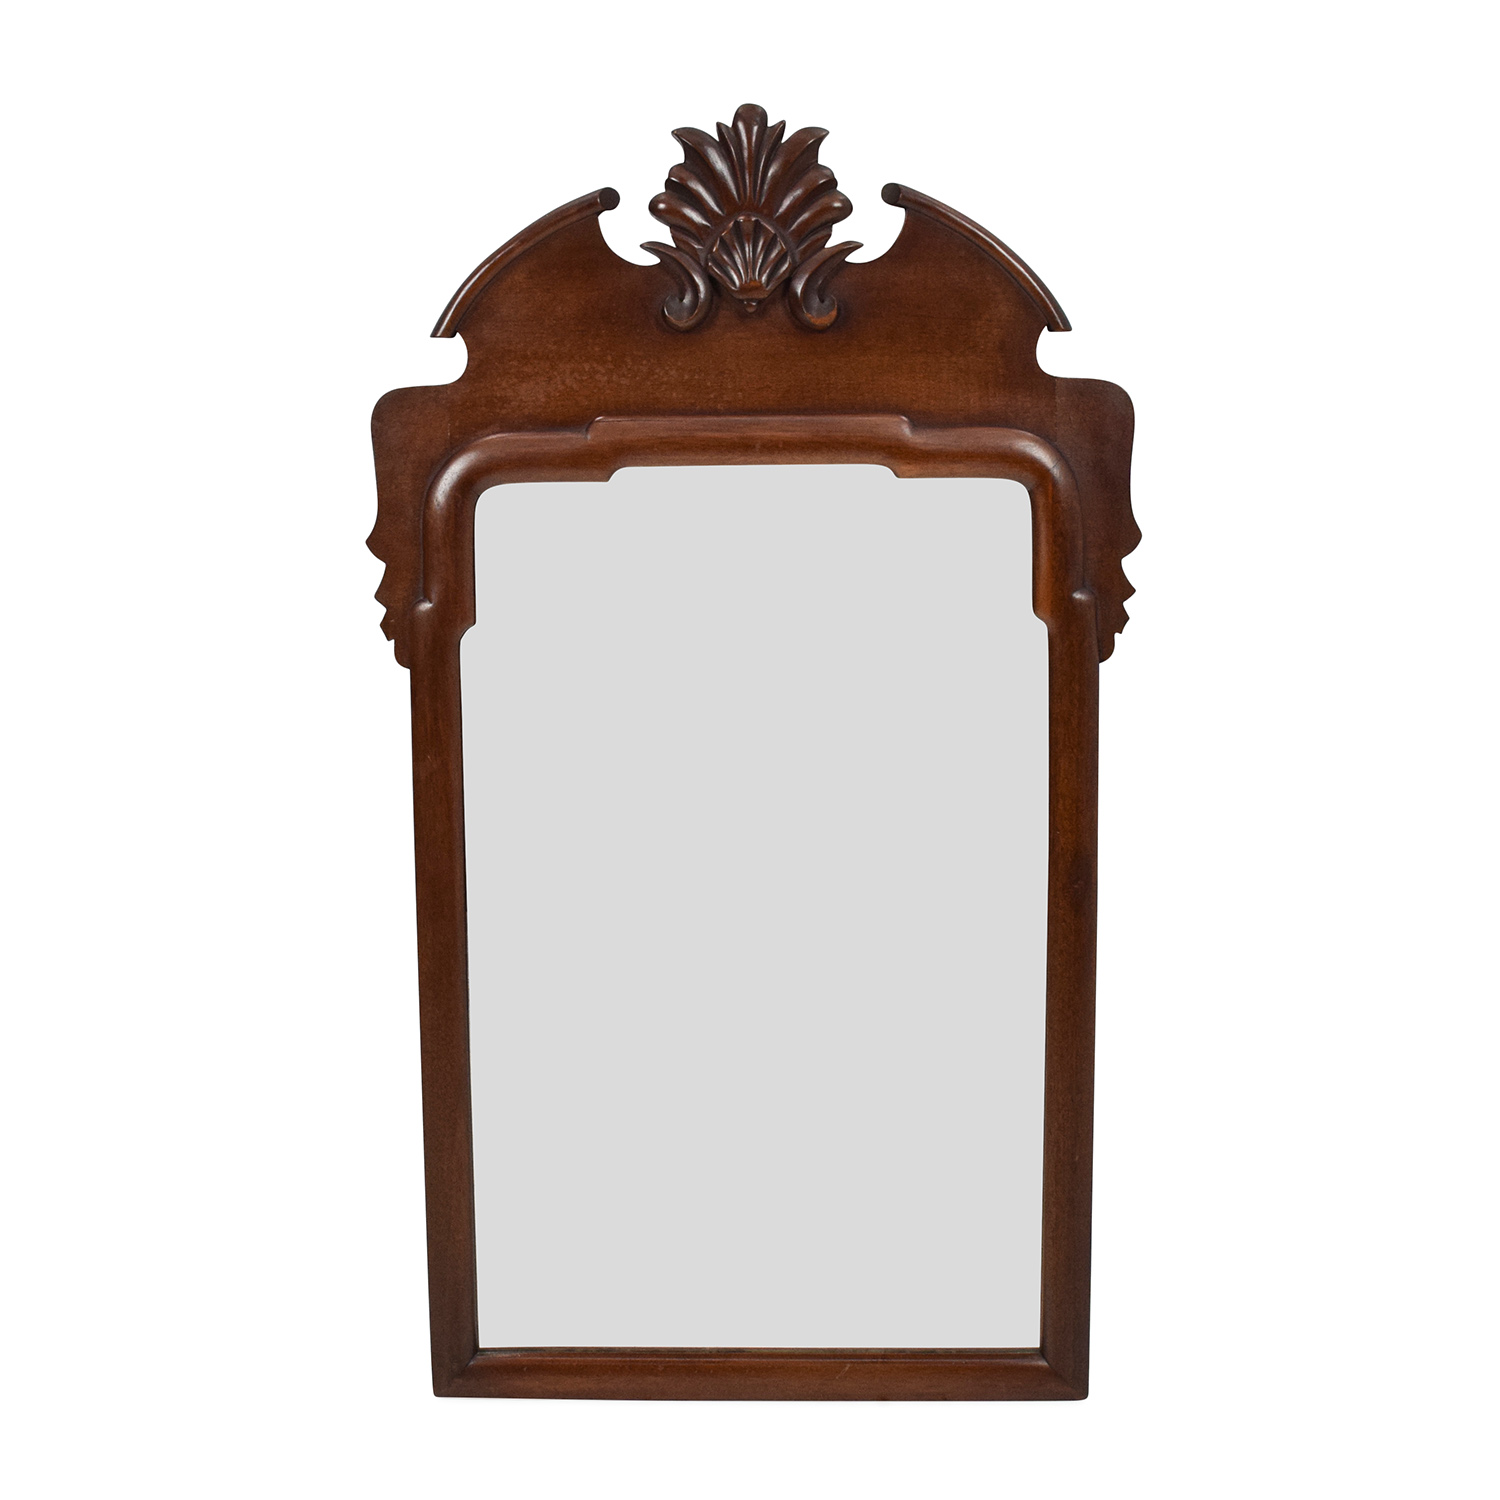 Loved unknown brand antique wood frame mirror discount for Inexpensive framed mirrors